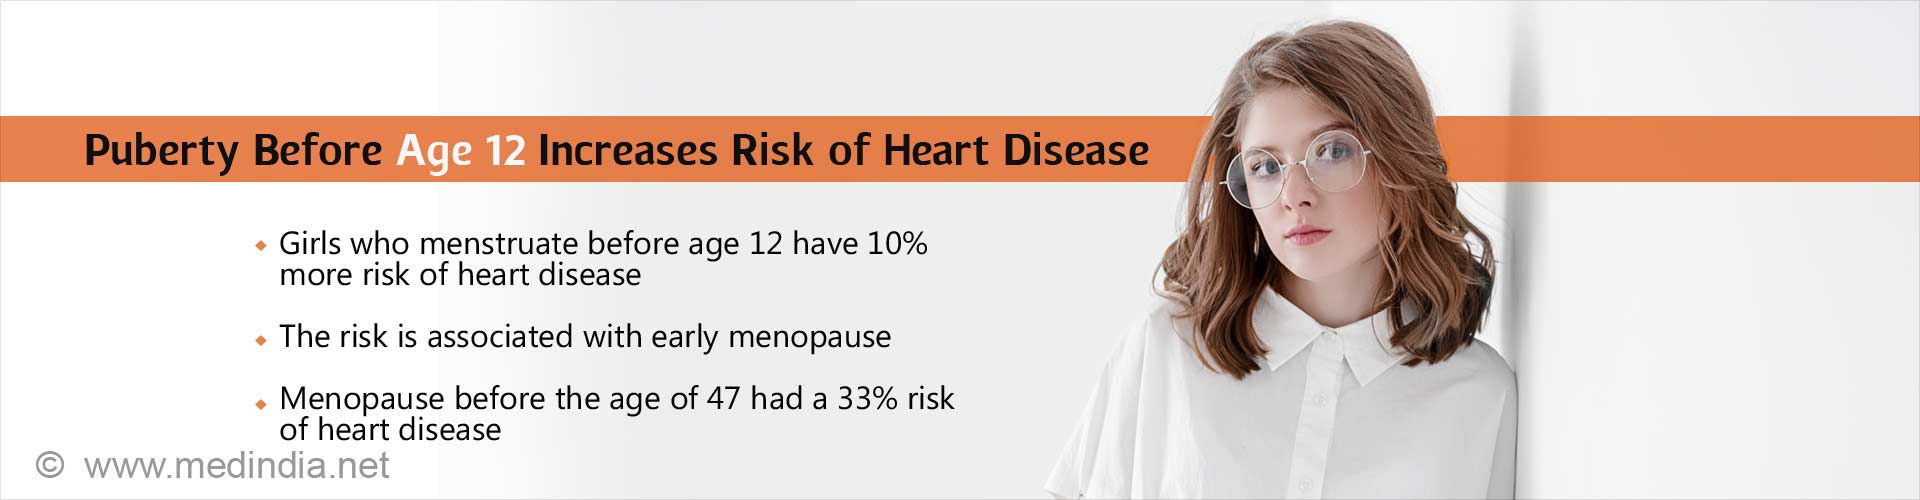 Puberty before age 12 increases risk of heart disease